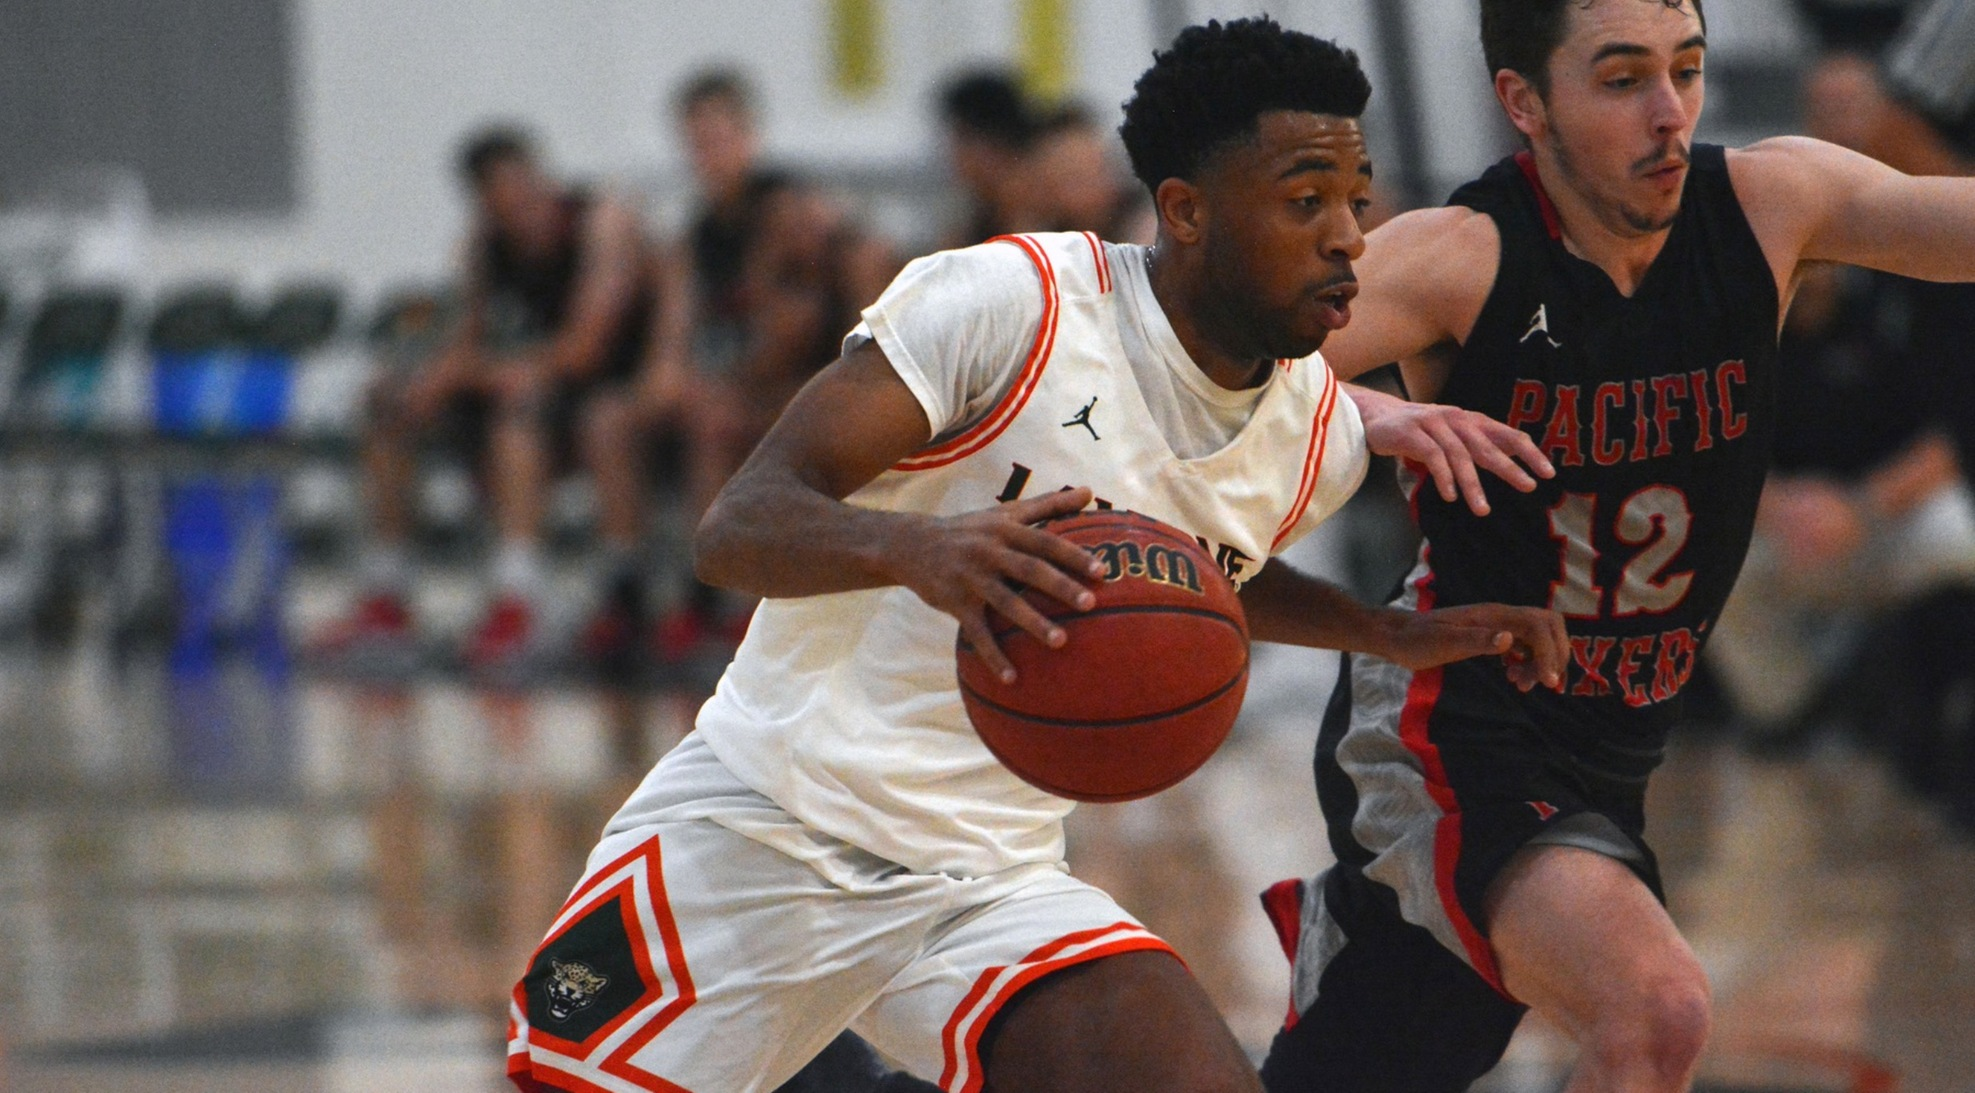 Men's Basketball falls to Whittier on the road